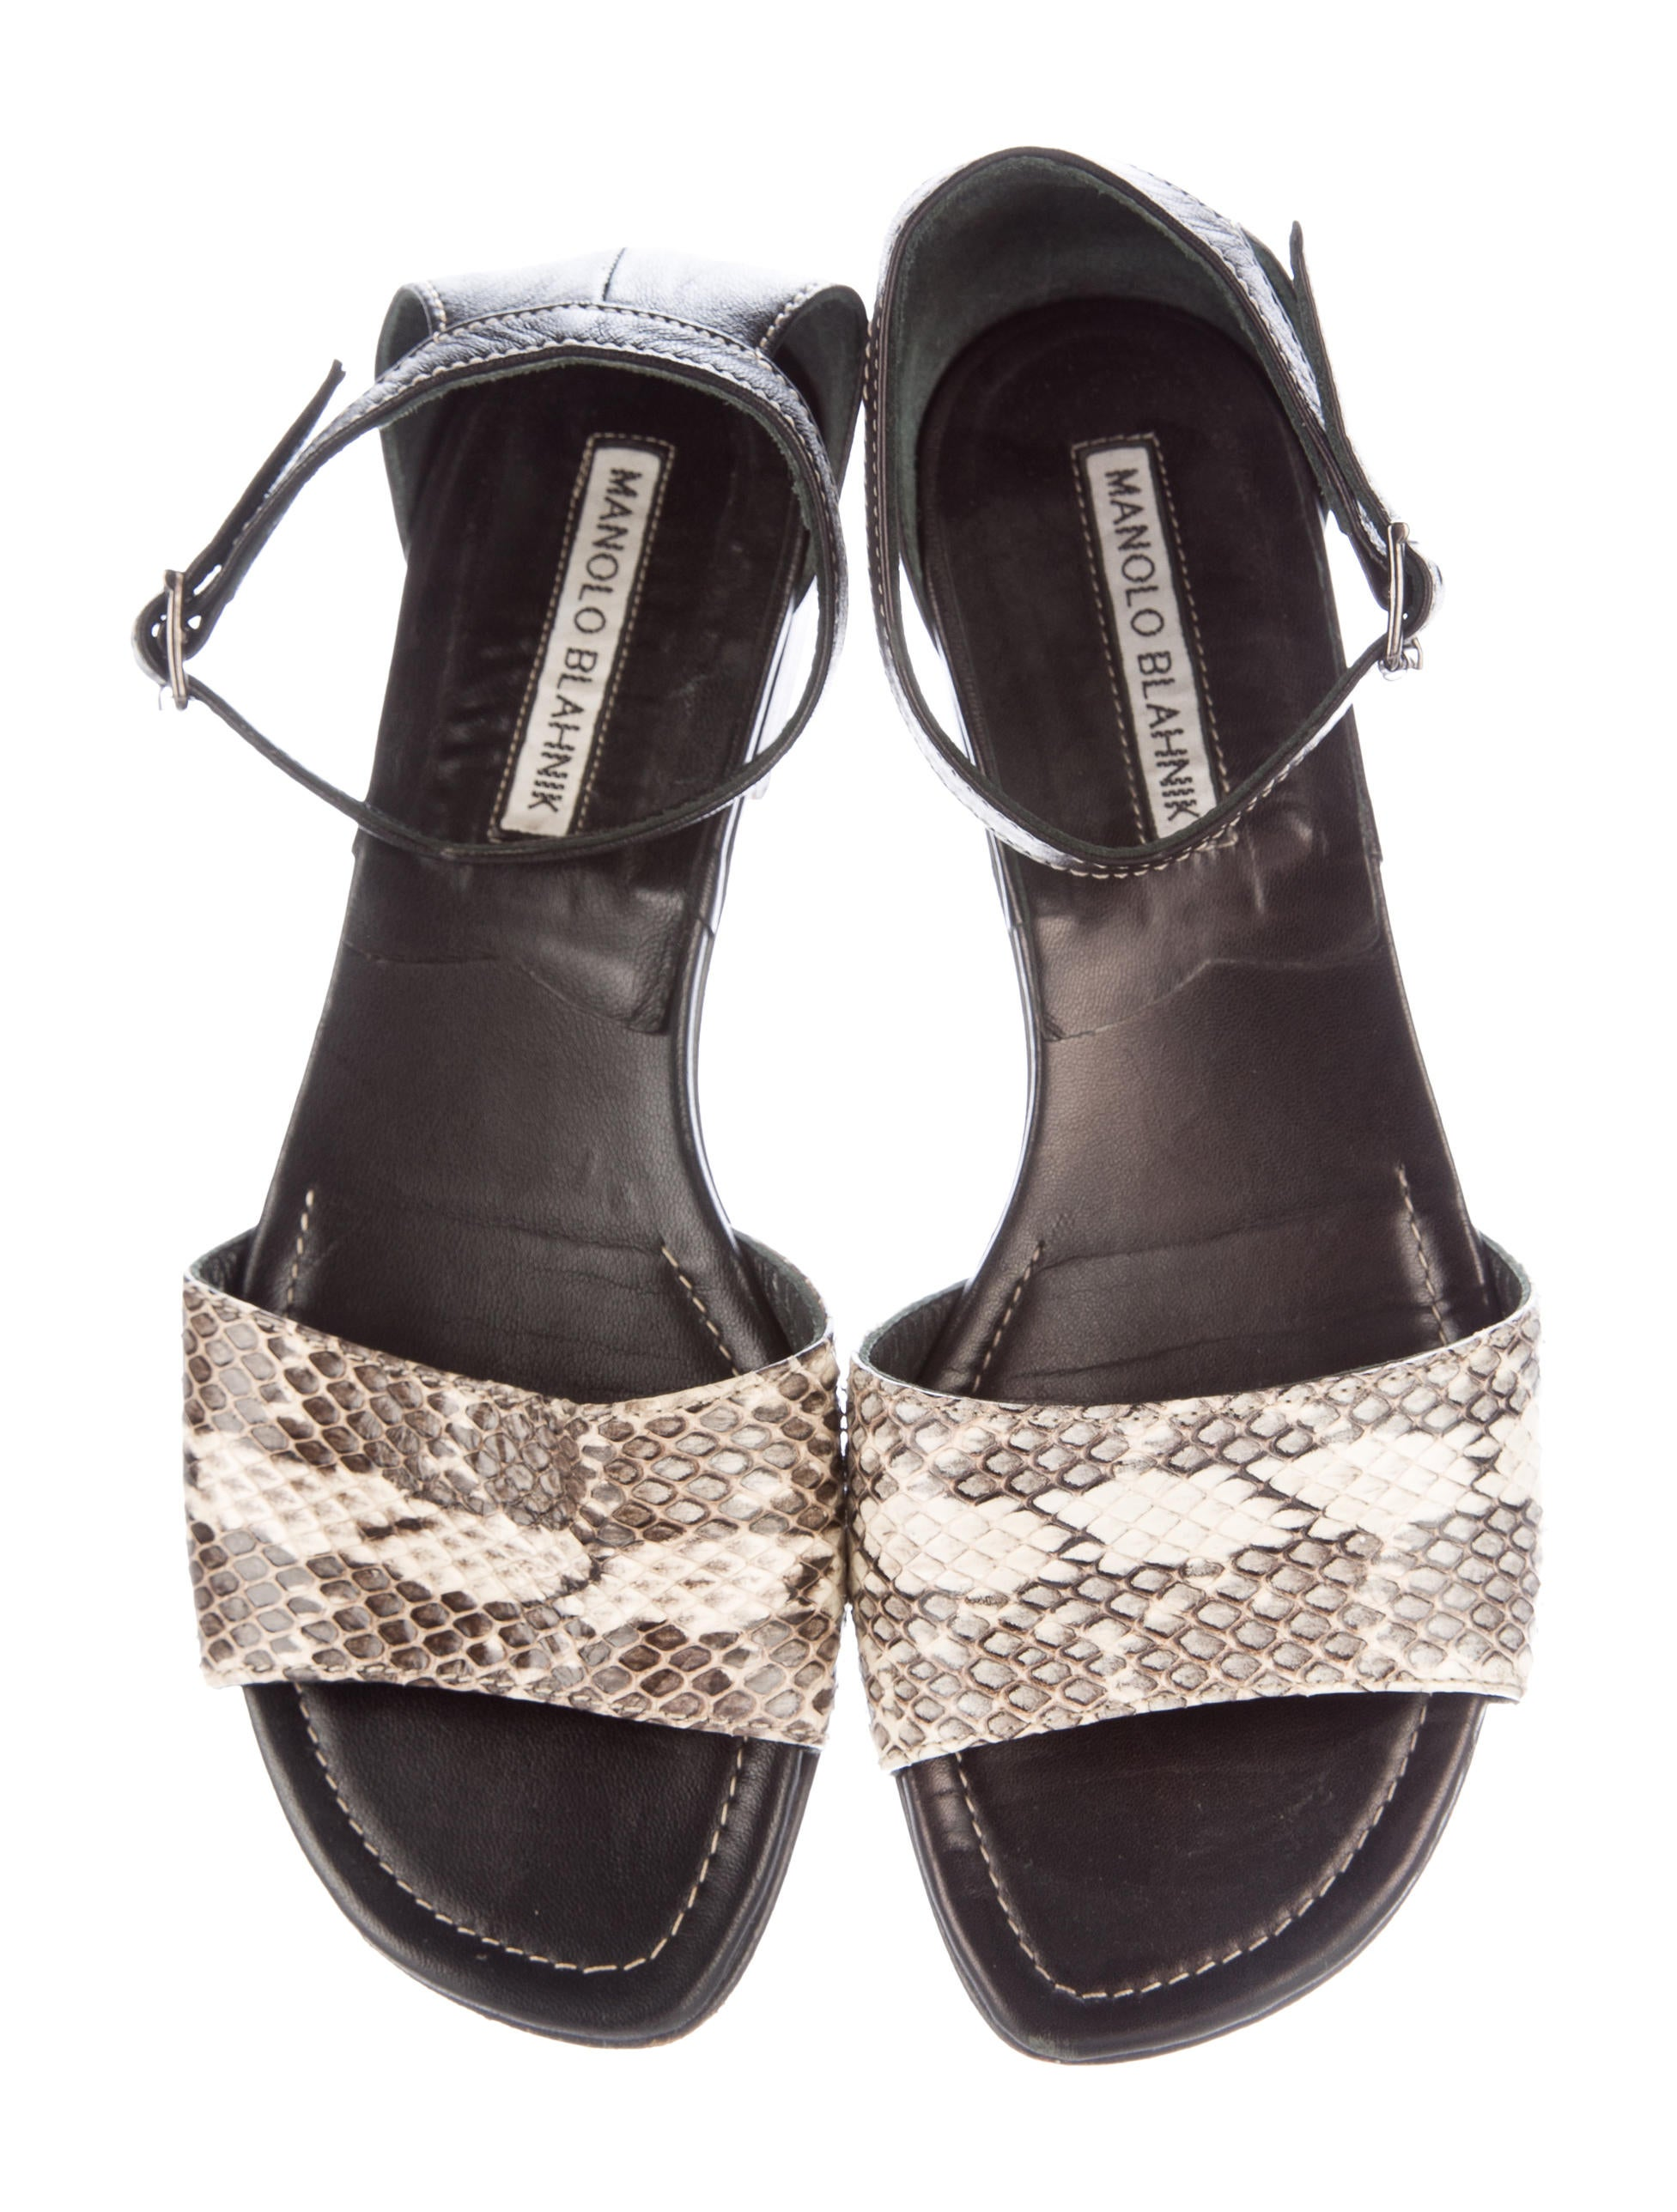 Manolo Blahnik Snakeskin Flat Sandals Shoes MOO60959  : MOO609593enlarged from www.therealreal.com size 1953 x 2576 jpeg 391kB